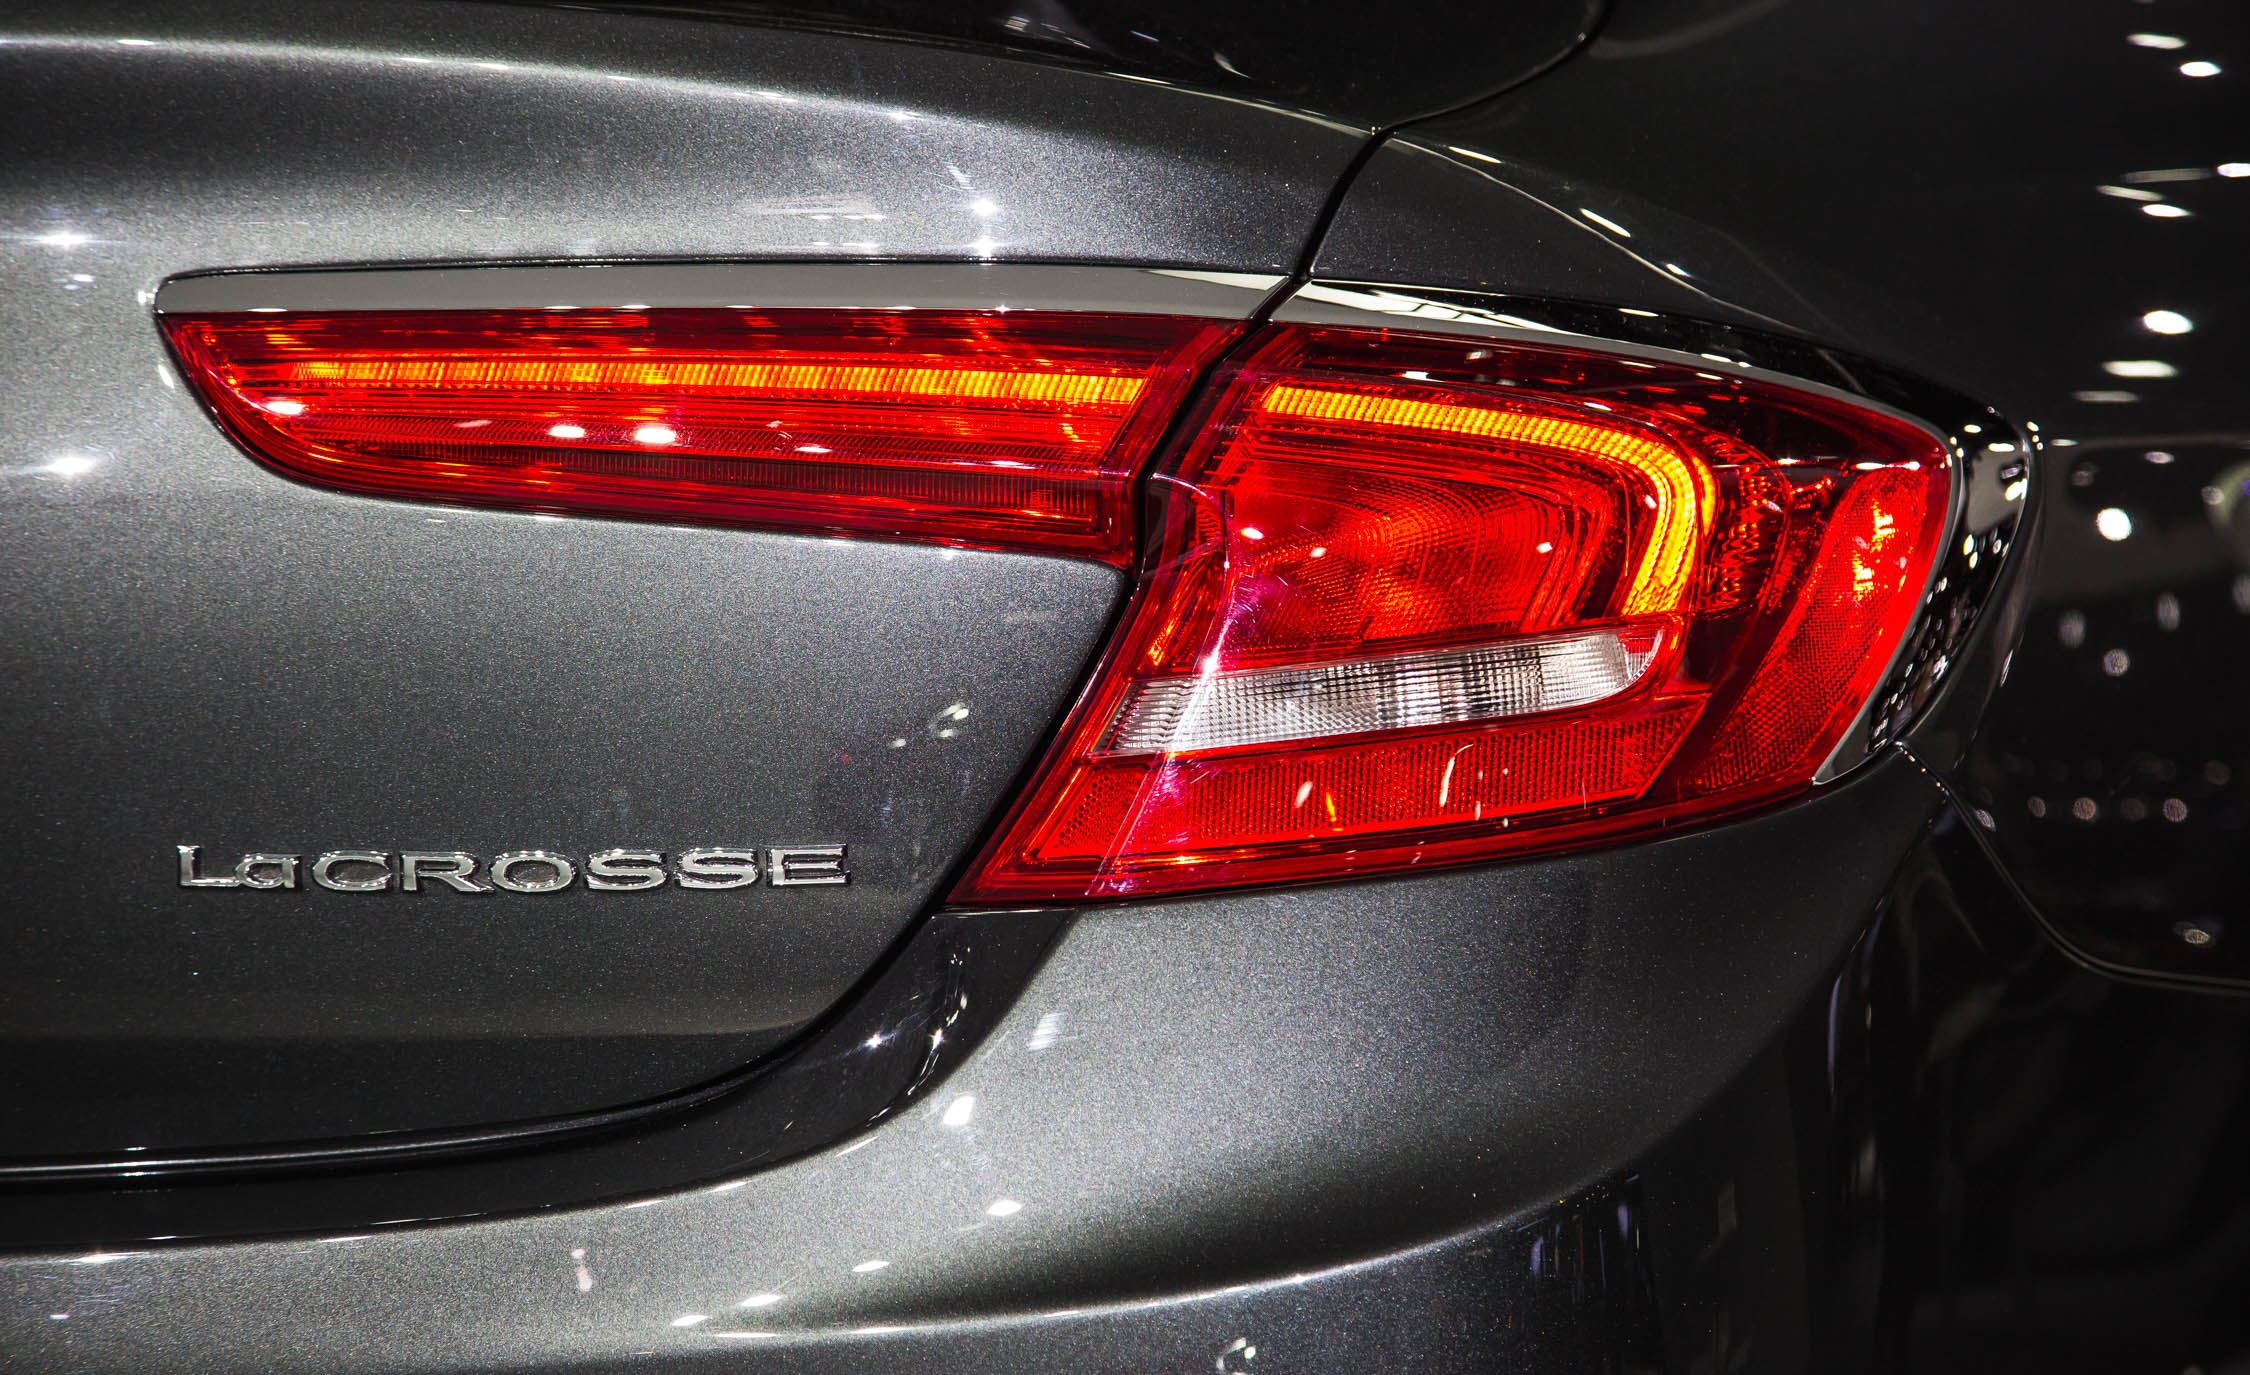 2017 Buick Lacrosse Taillight (Photo 26 of 26)